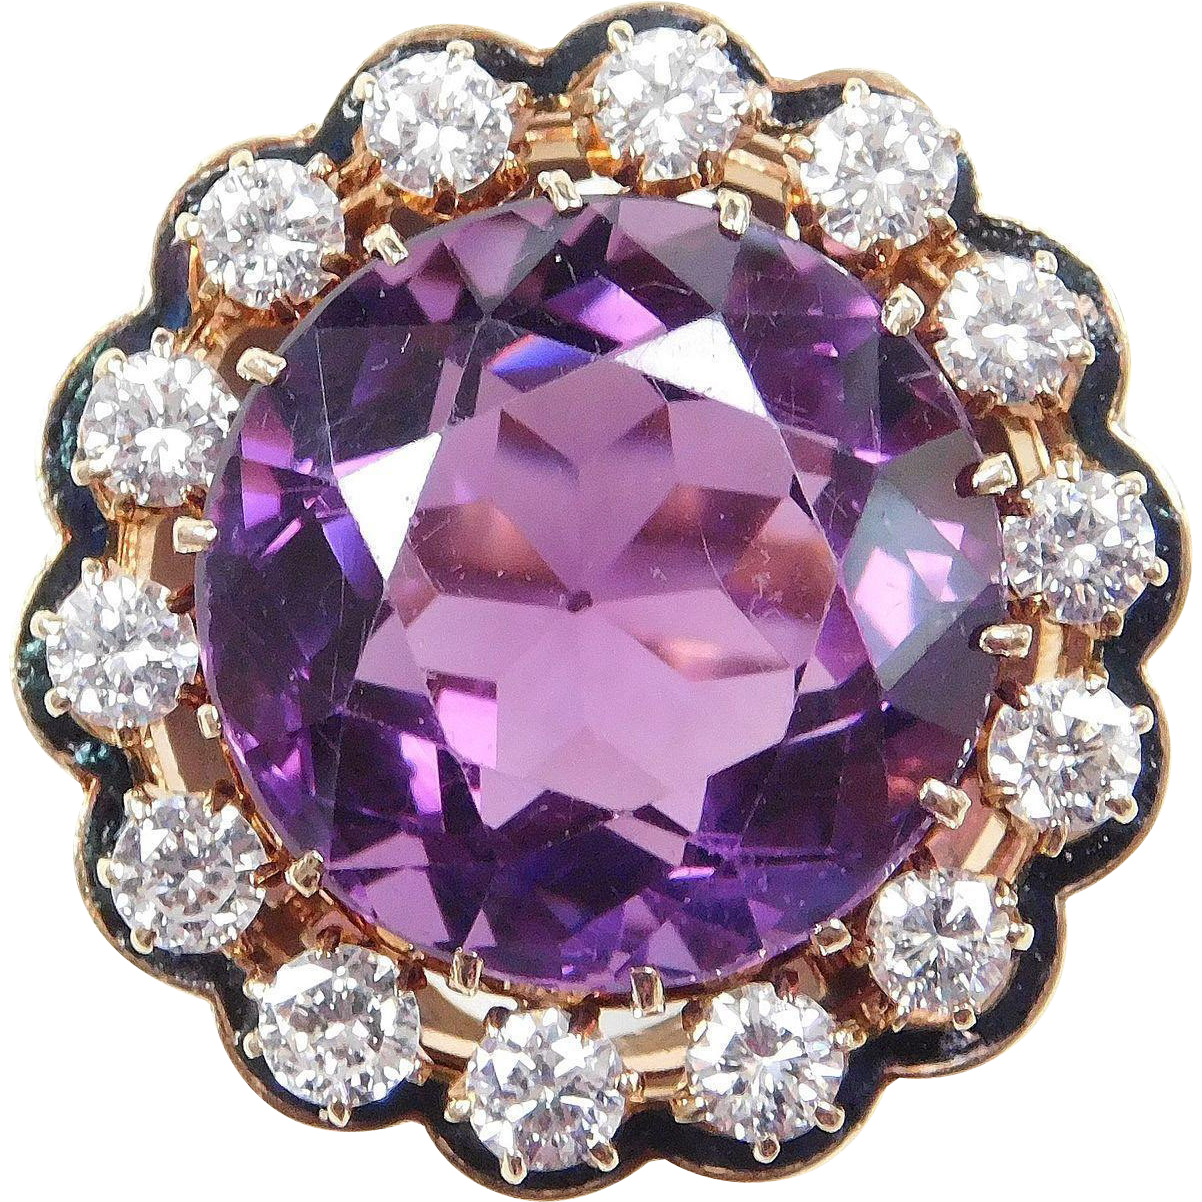 Vintage AMETHYST 25.0 Carat & 2.24 ctw DIAMOND Ring Huge!